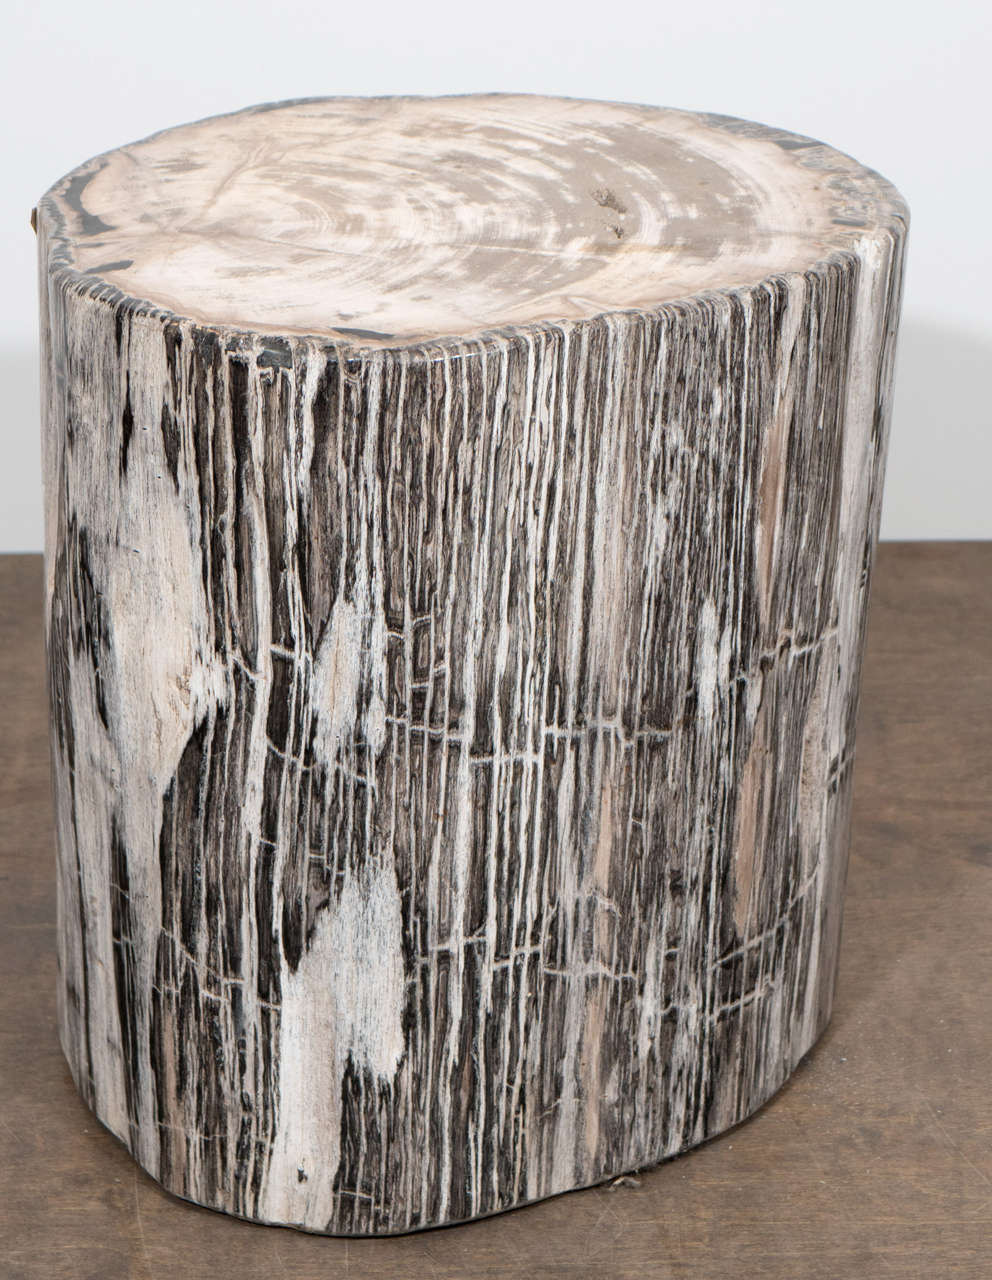 High quality petrified wood side table. Petrified wood is a fossil. It forms when plant material is buried by sediment and protected from decay by oxygen and organisms. Then, groundwater rich in dissolved solids flows through the sediment replacing